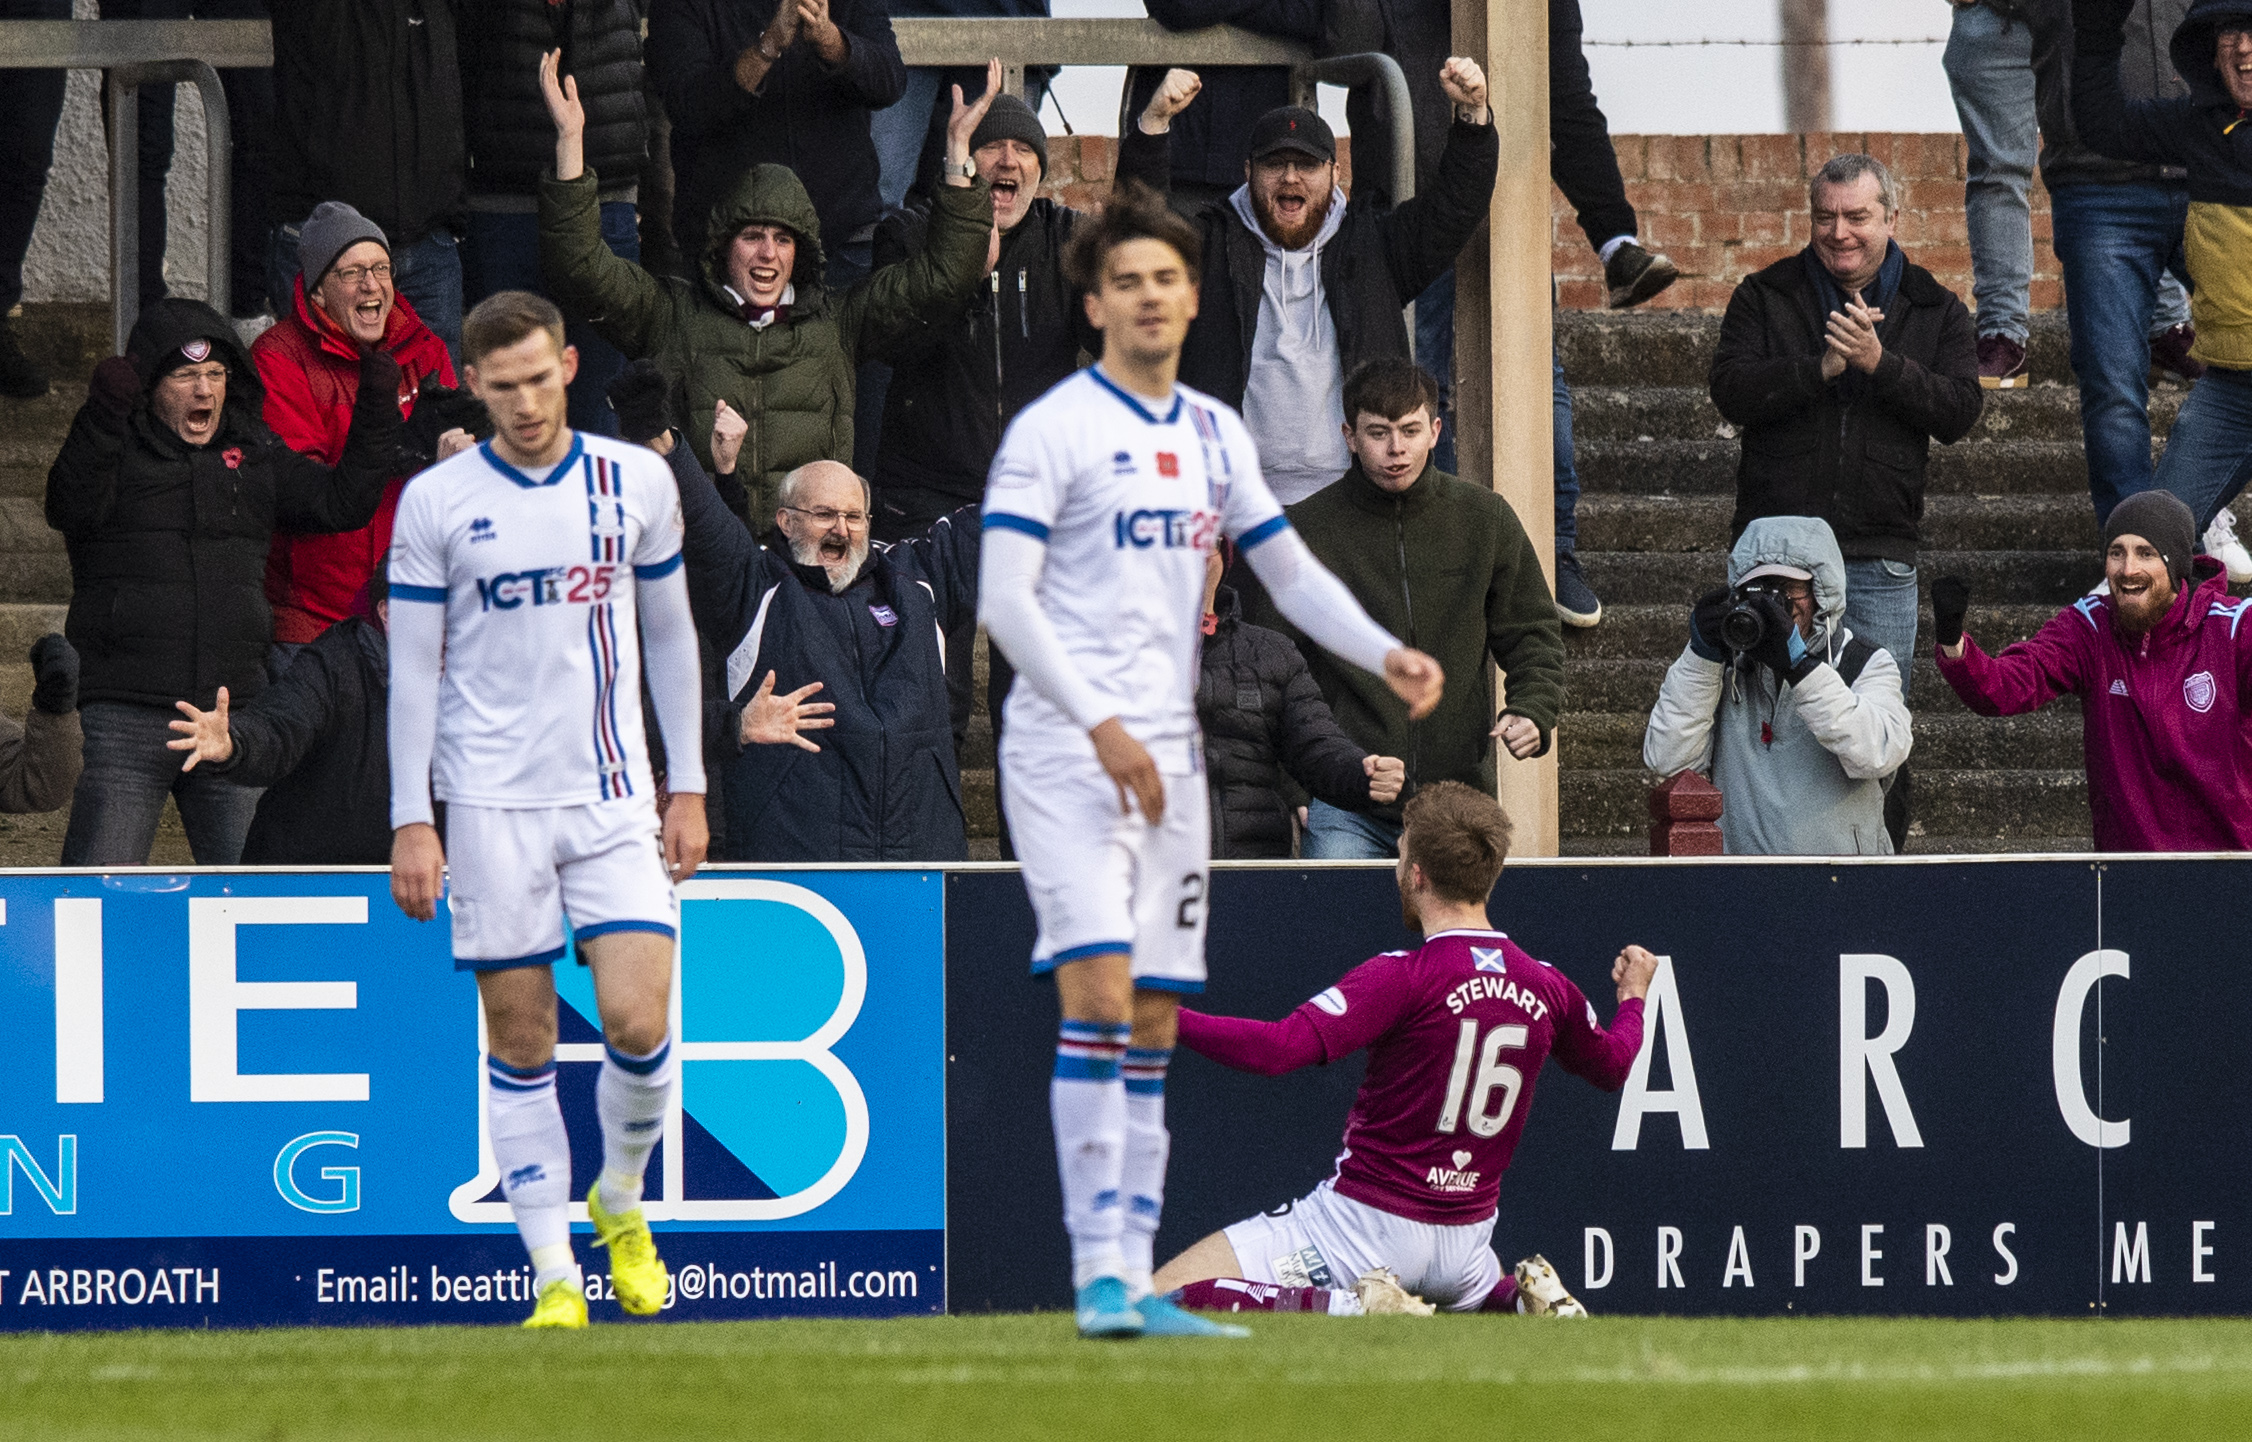 Arbroath's Scott Stewart celebrates his goal to make it 1-0 during the Ladbrokes Championship match between Arbroath and Inverness Caley Thistle.